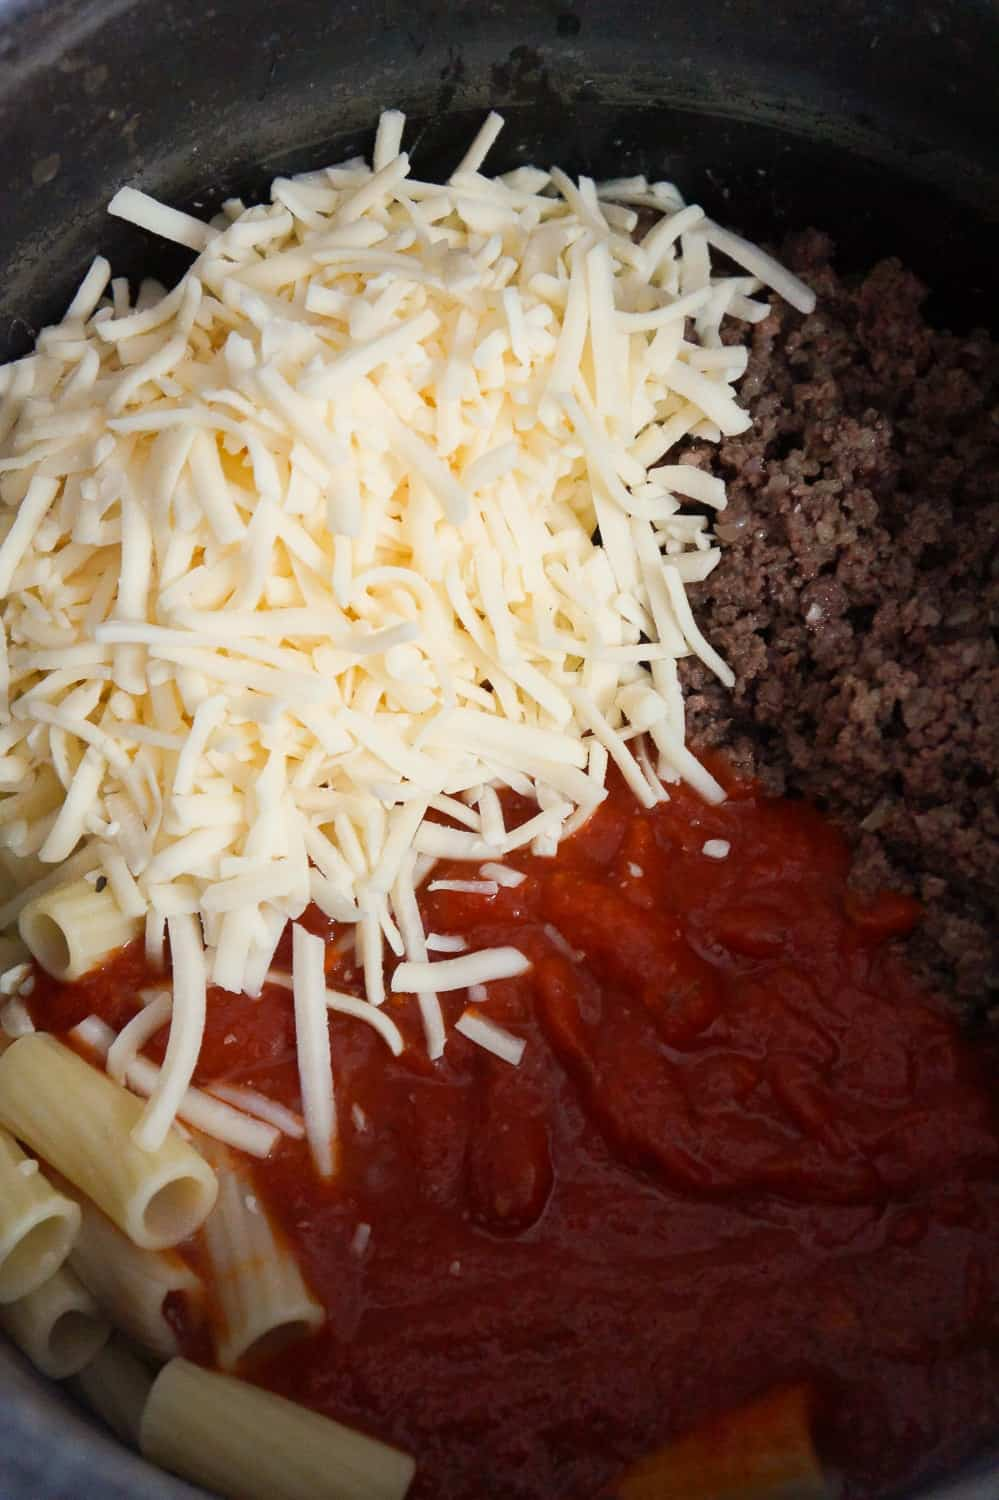 shredded mozzarella, cooked ground beef and marinara sauce dumped on top of rigatoni noodles.